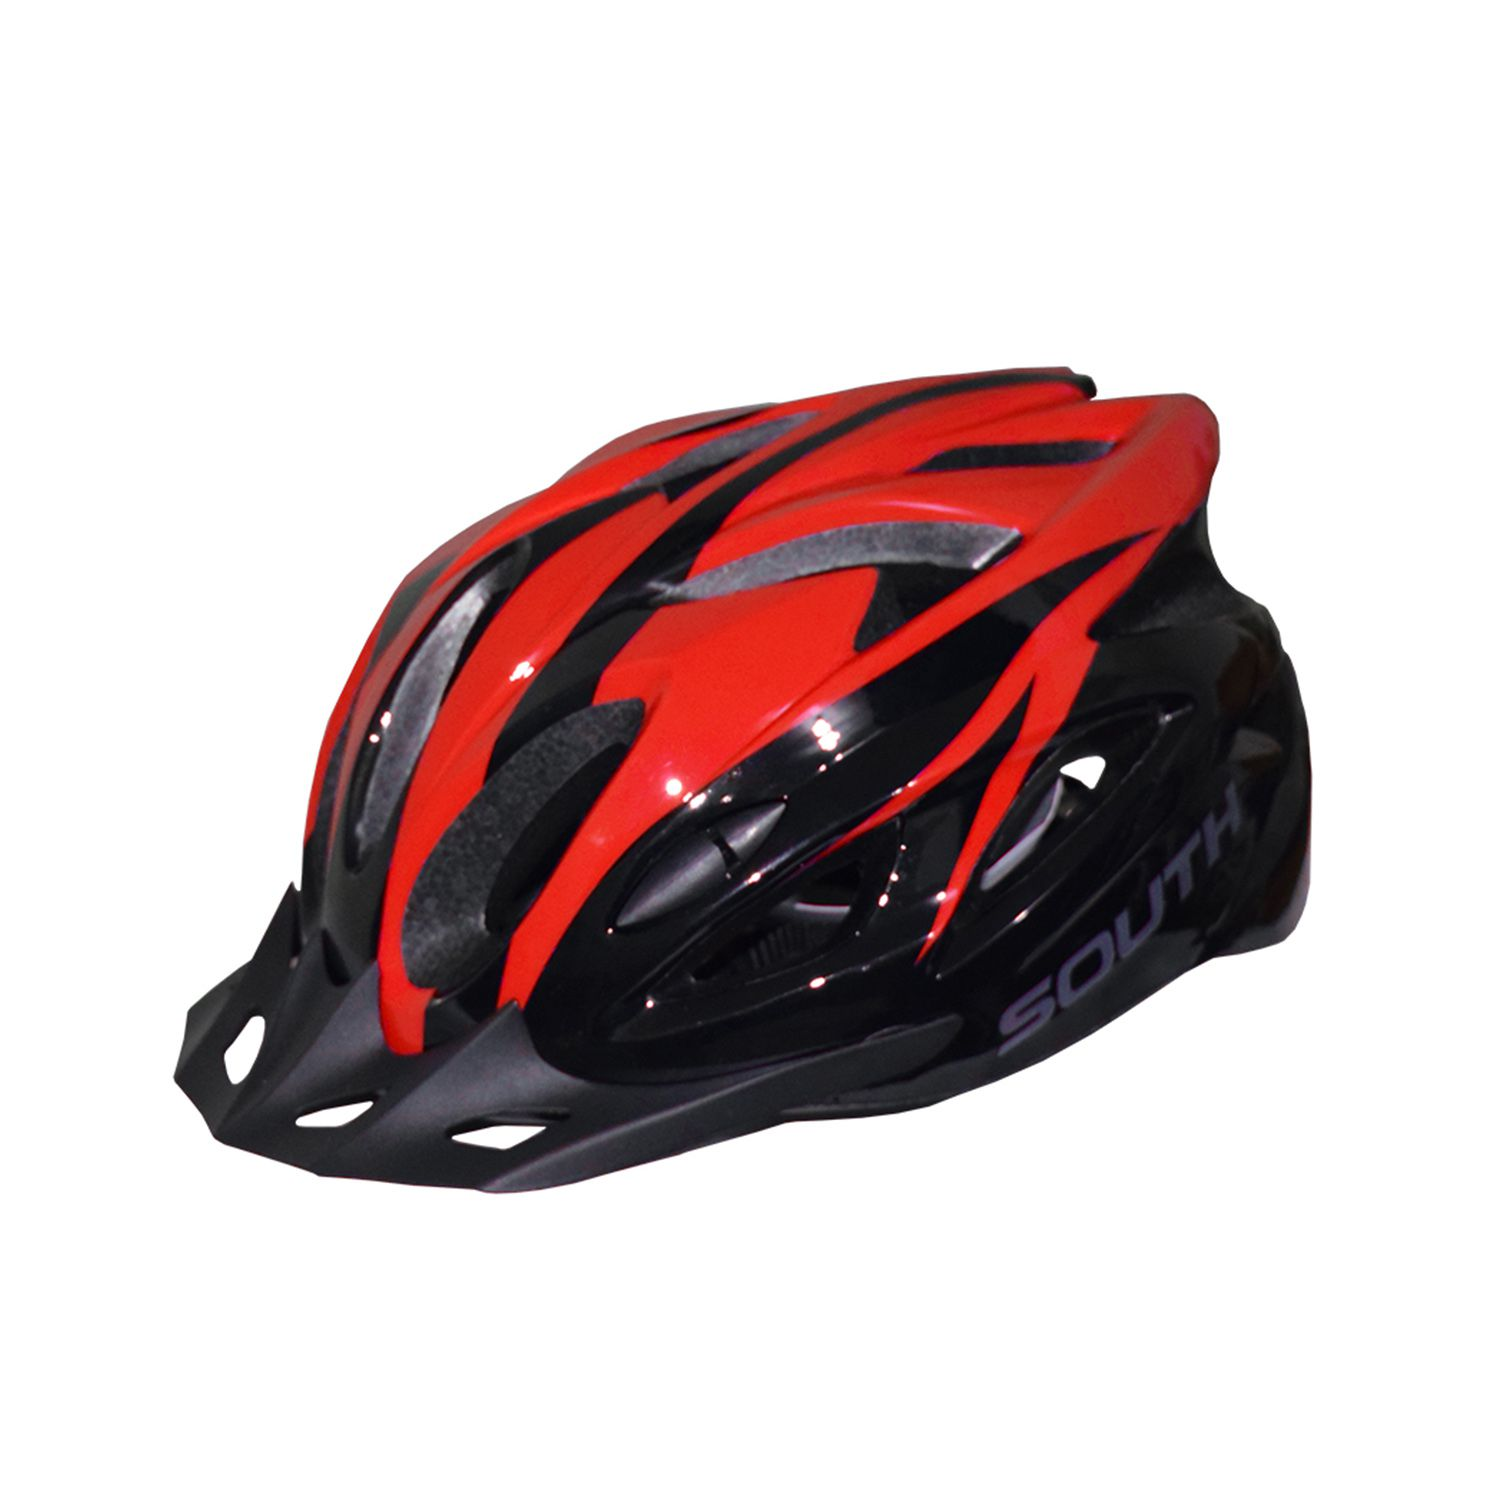 Capacete Southbike com Regulagem e Vista Light